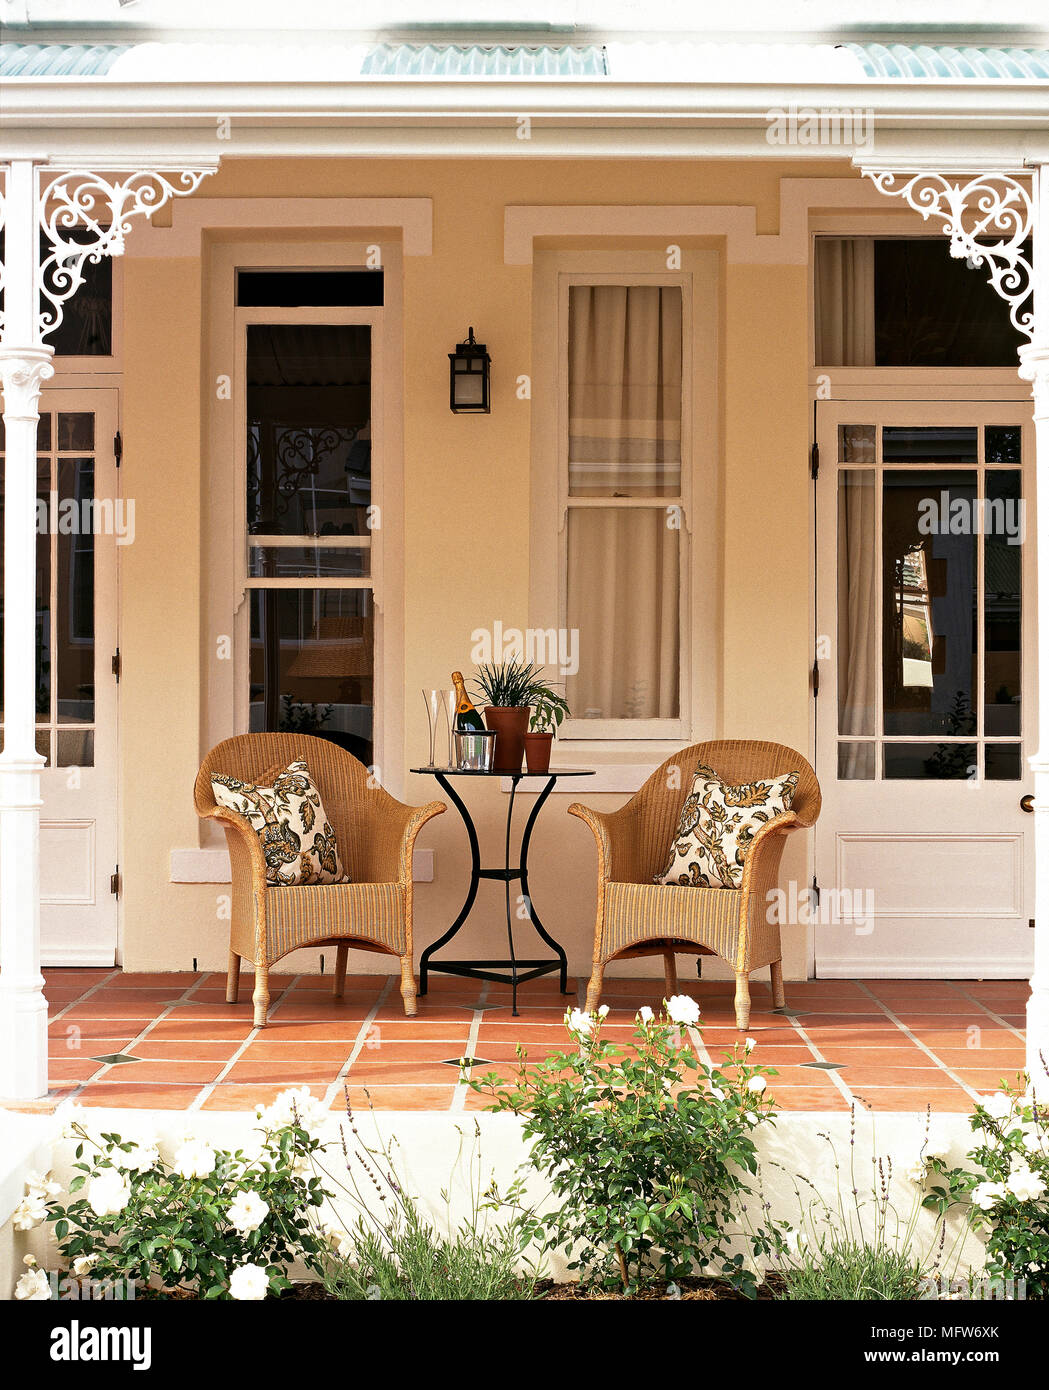 Exterior Of A Bungalow With Wicker Chairs On A Covered Veranda.   Stock  Image